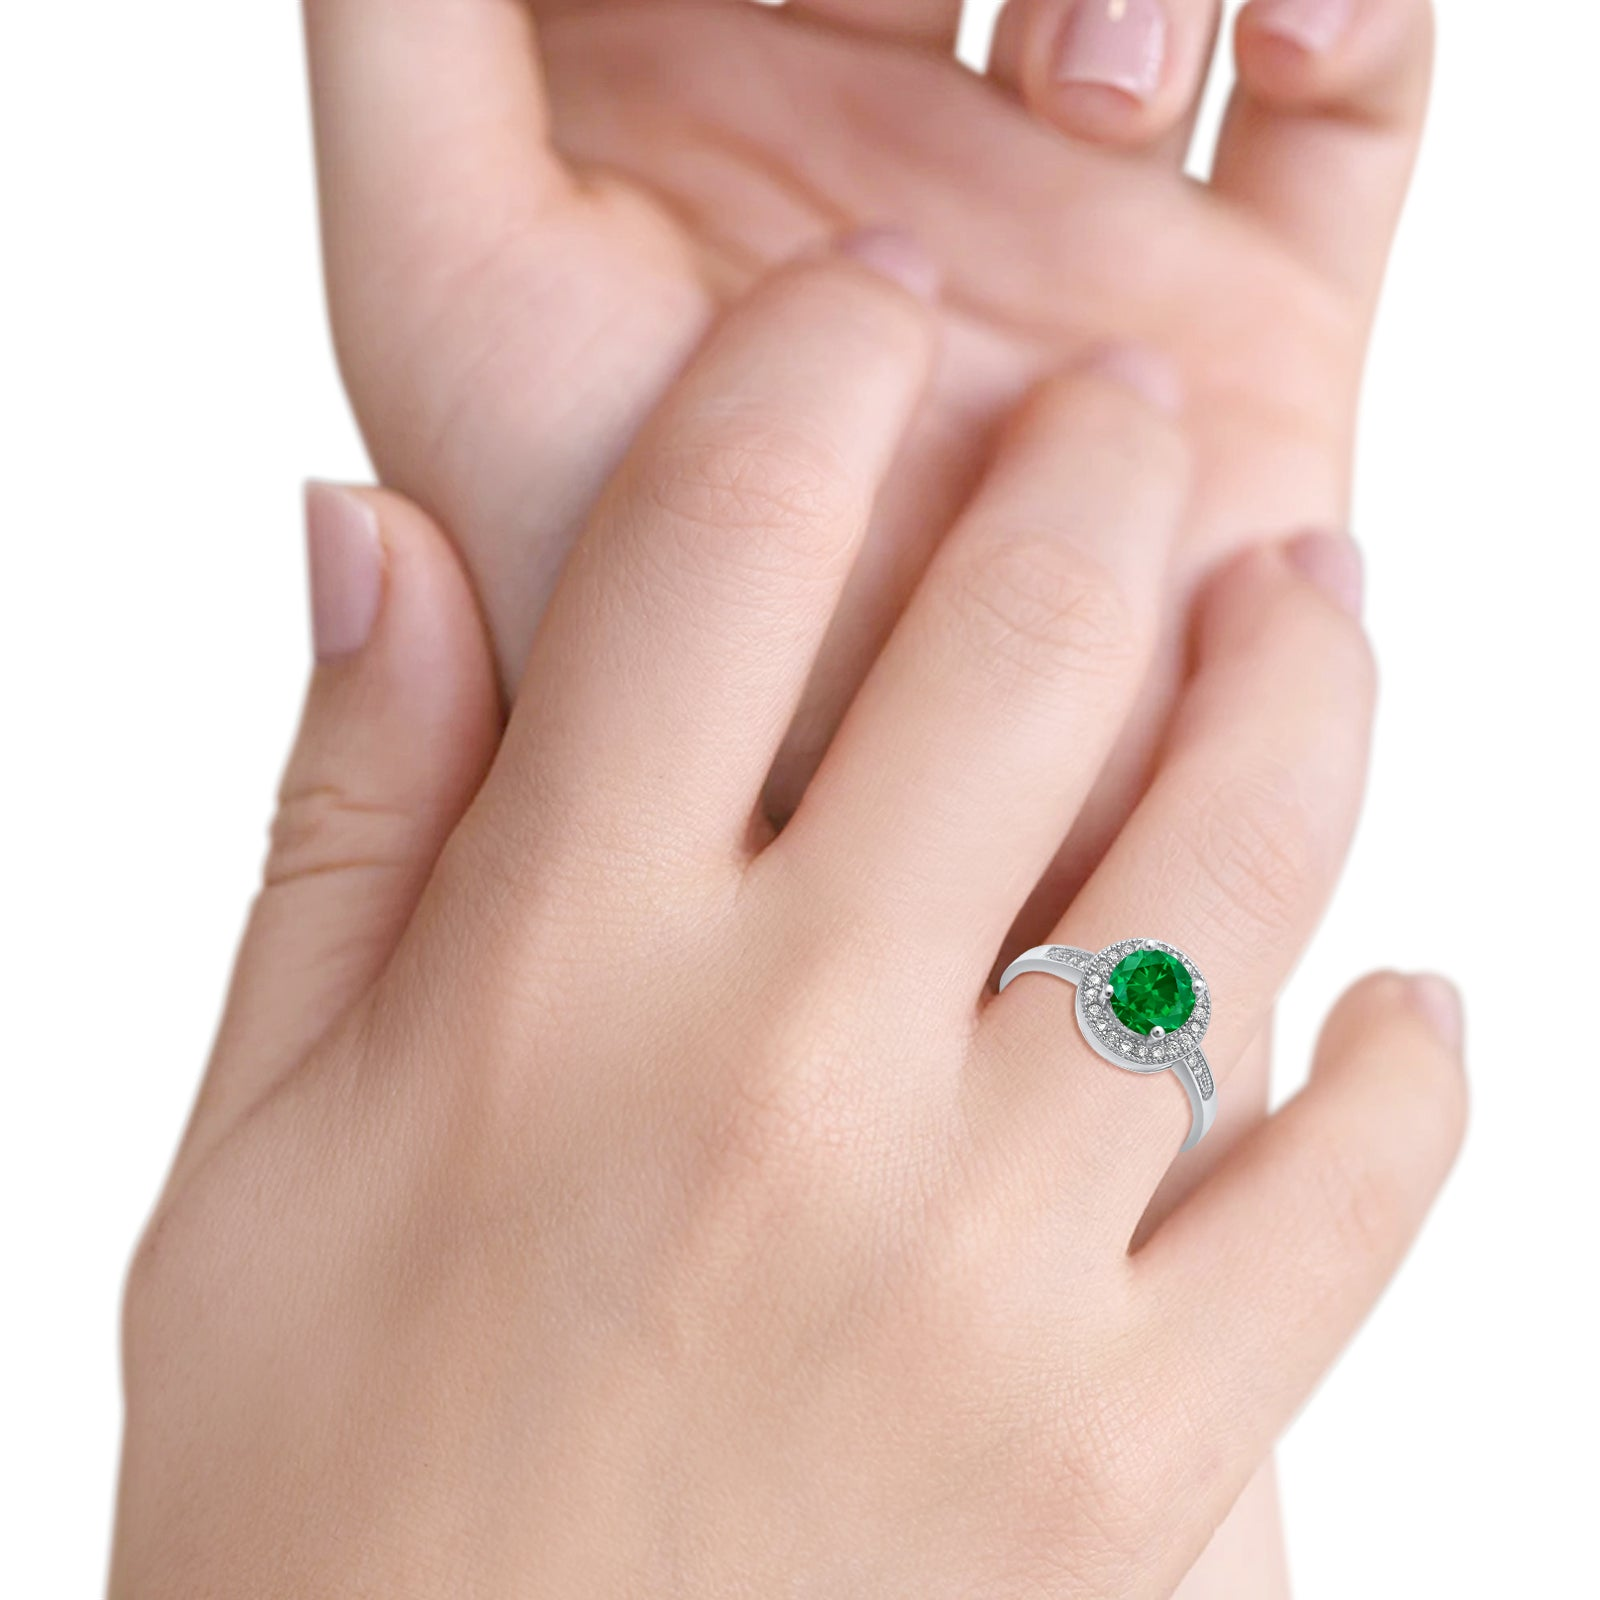 Halo Engagement Ring Round Simulated Green Emerald CZ 925 Sterling Silver